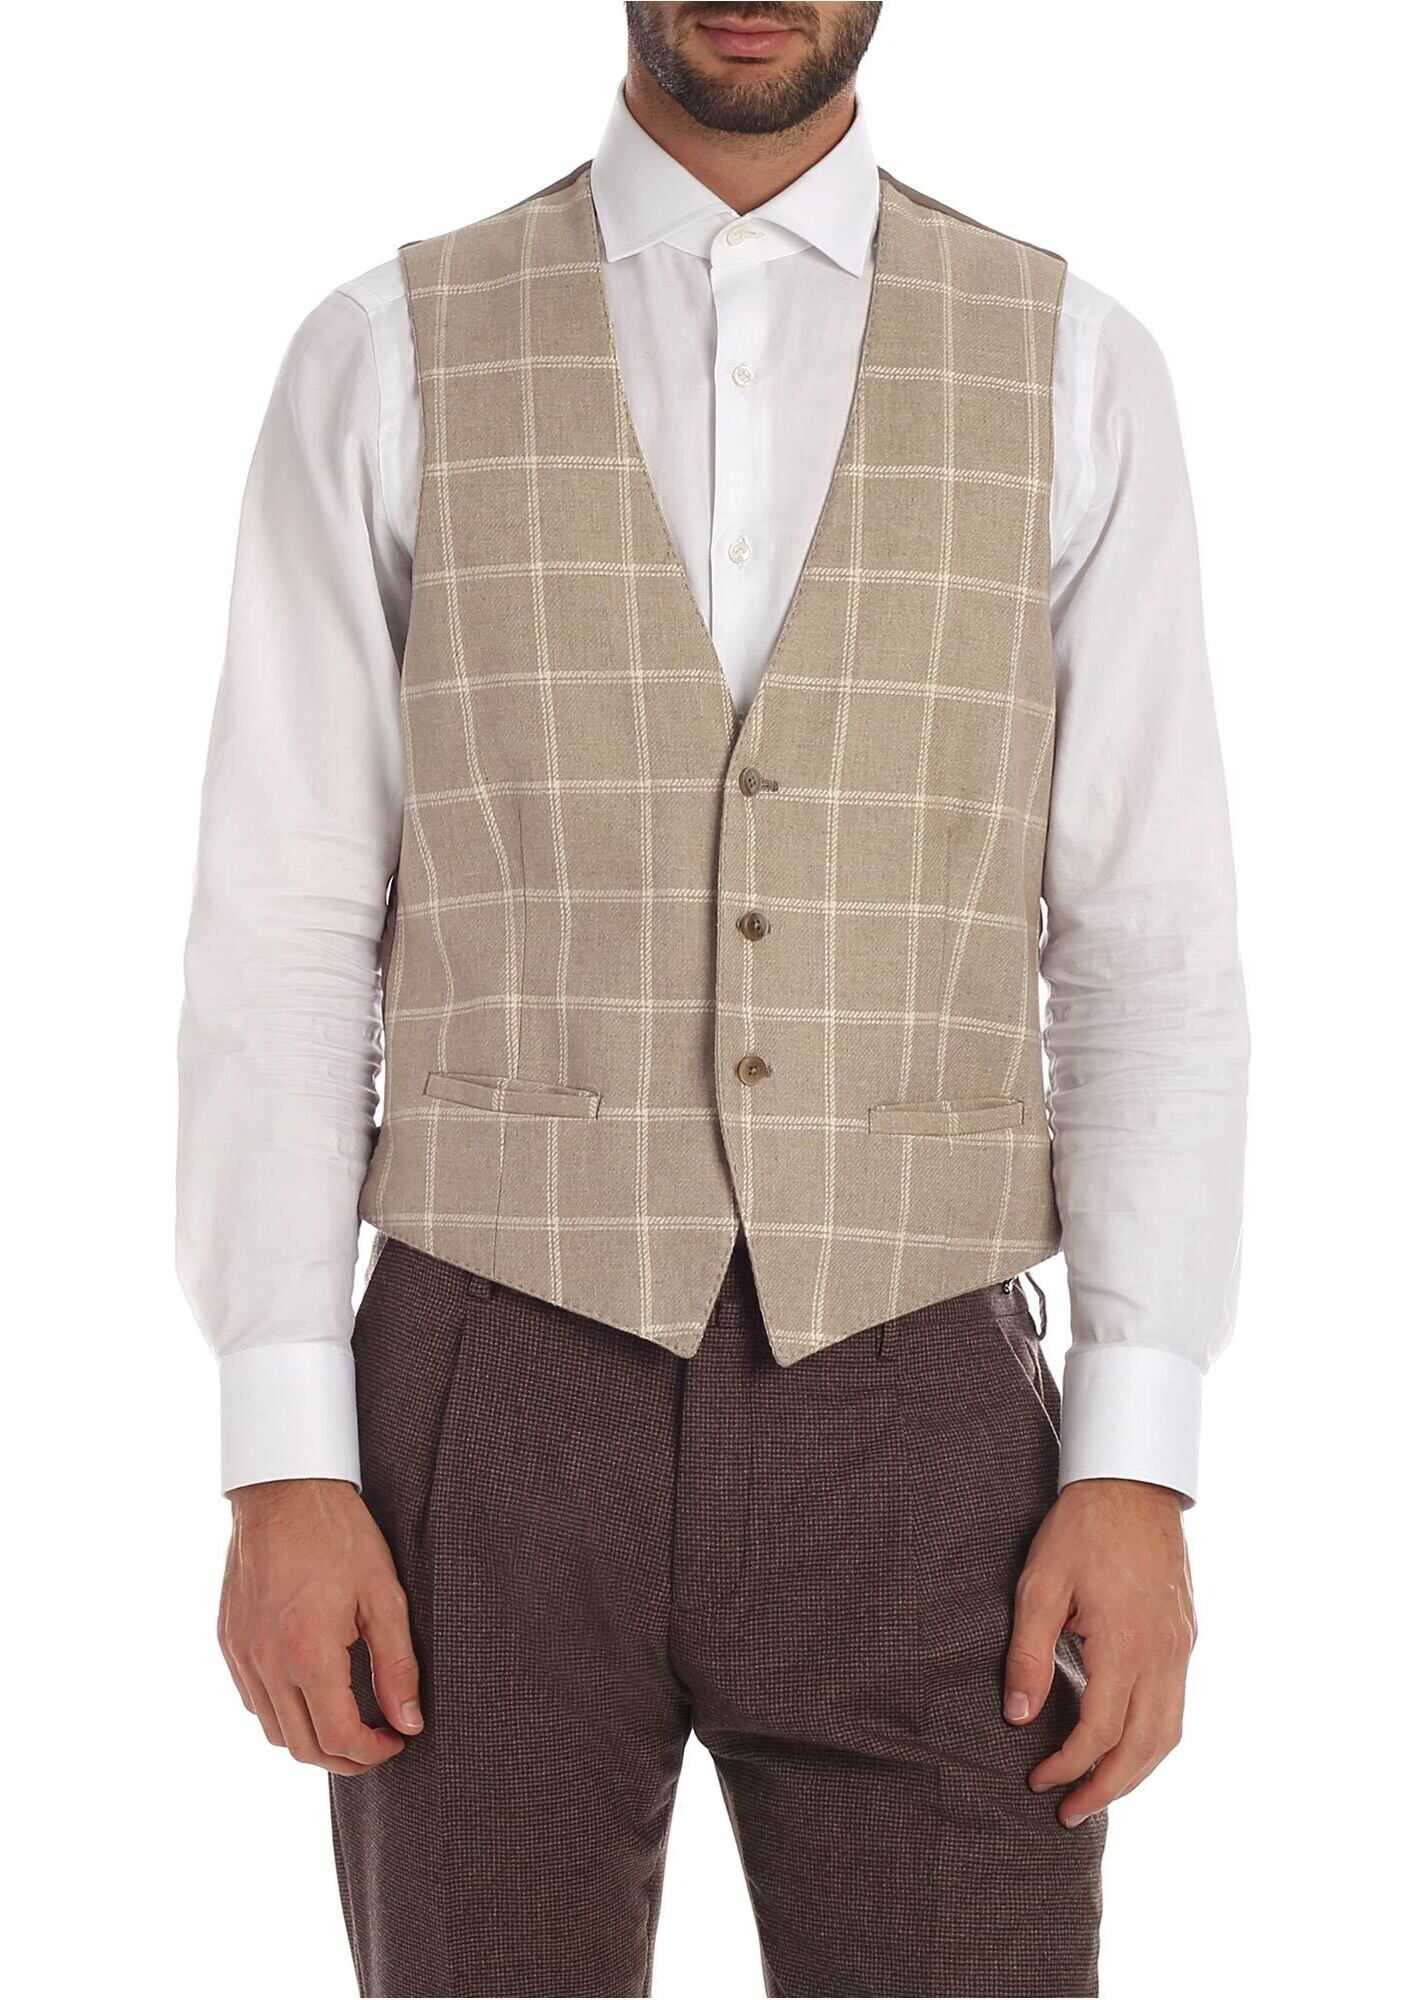 L.B.M. 1911 Checked Waistcoat In Beige And Grey Beige